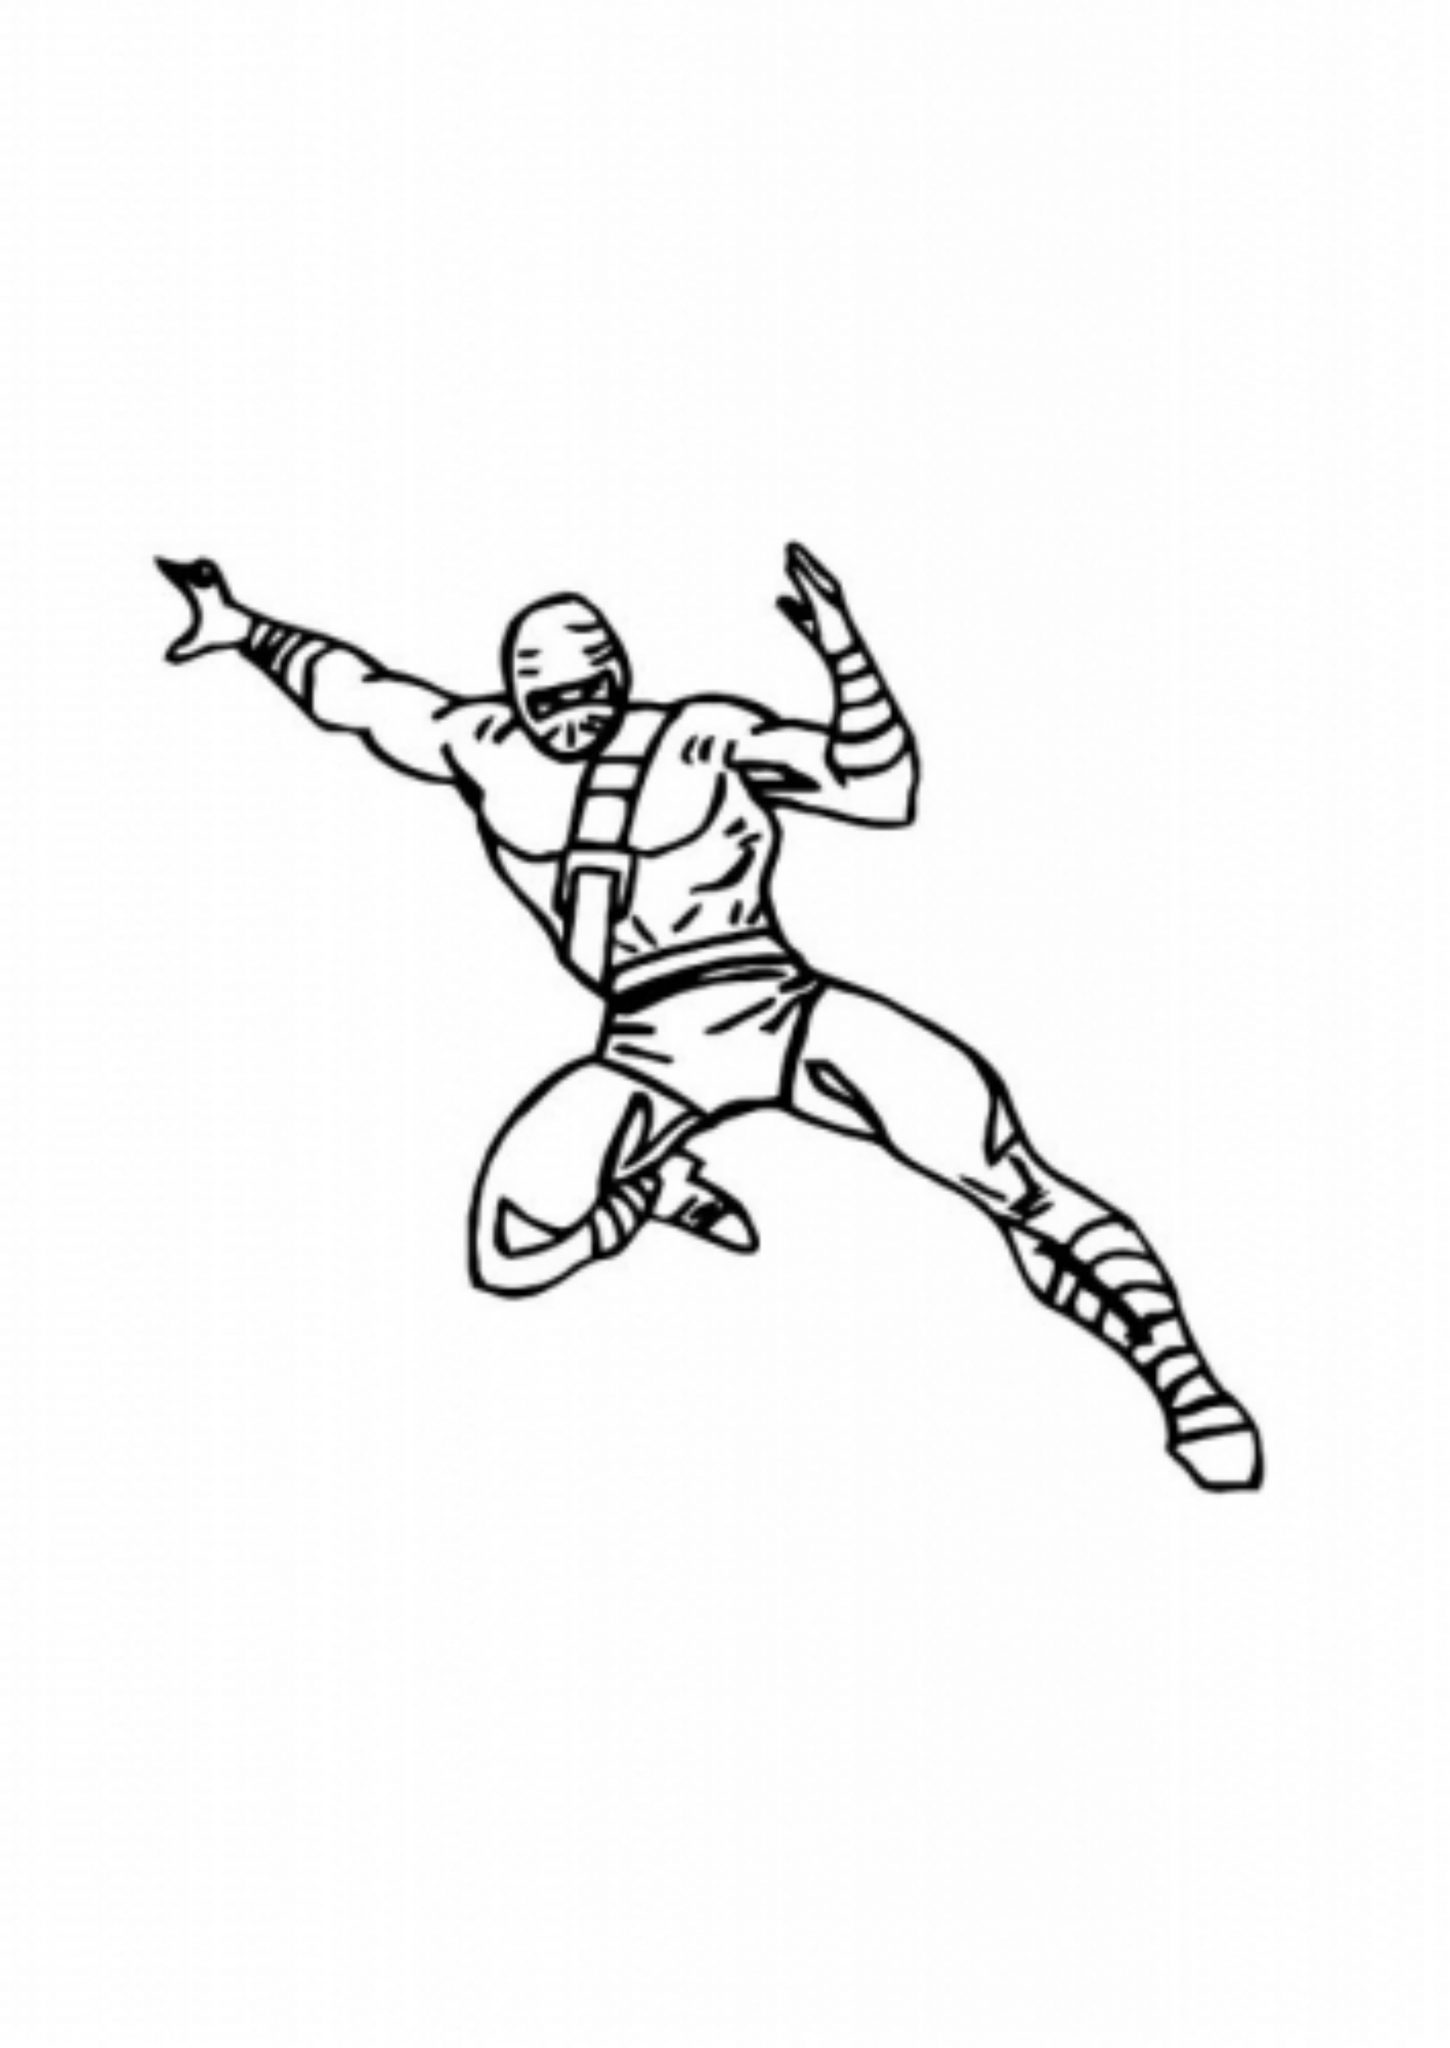 Print & Download The Attractive Ninja Coloring Pages for Kids